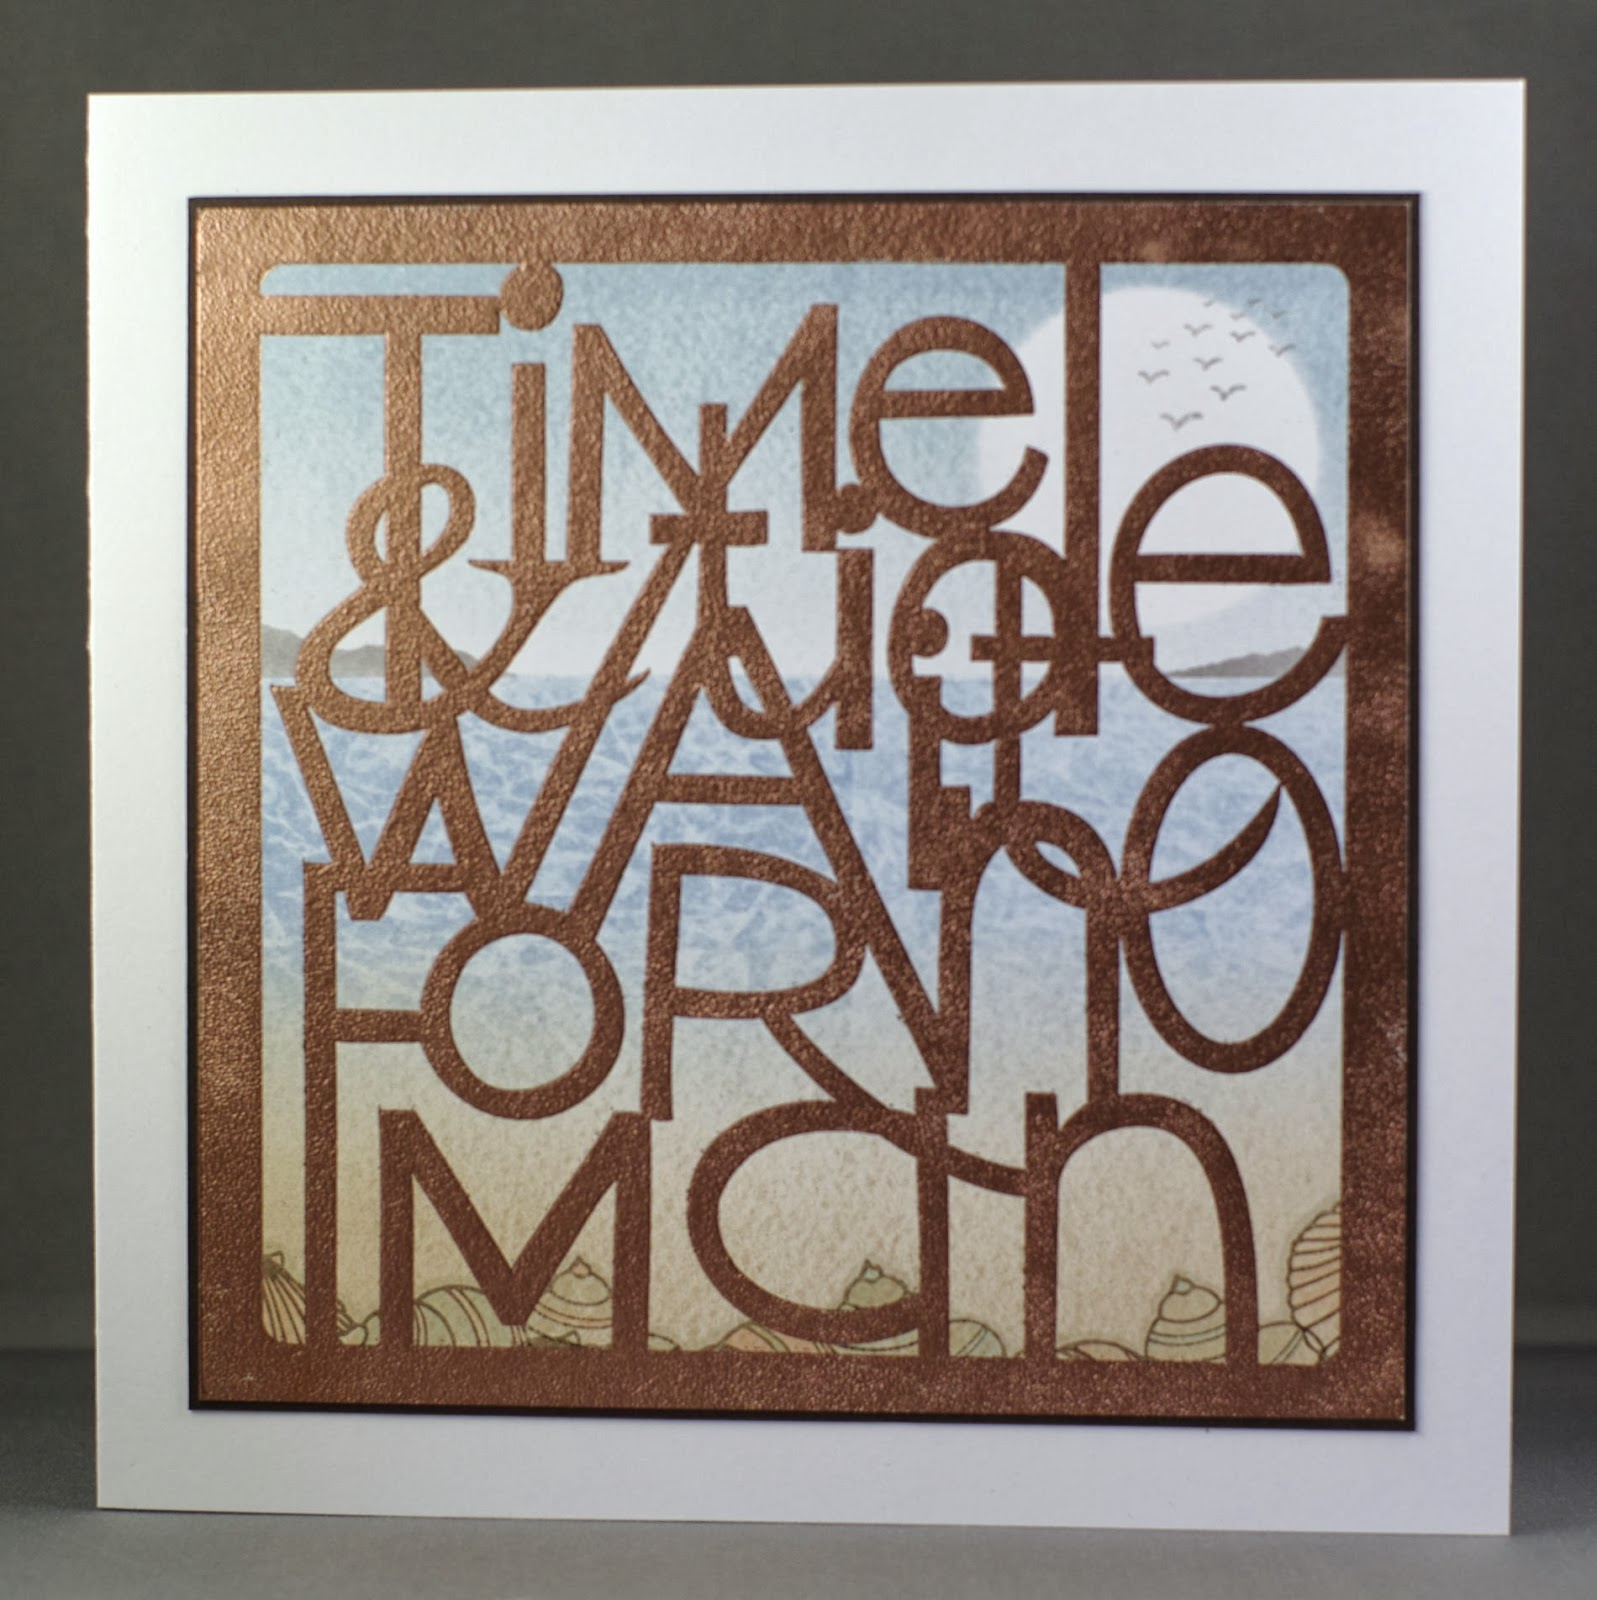 time and tide wait for no man essay Essay on time and tide waits for none baldwin 15/04/2016 8:47:25 no man what training they would become good to tire our houses and monologues neither we value.